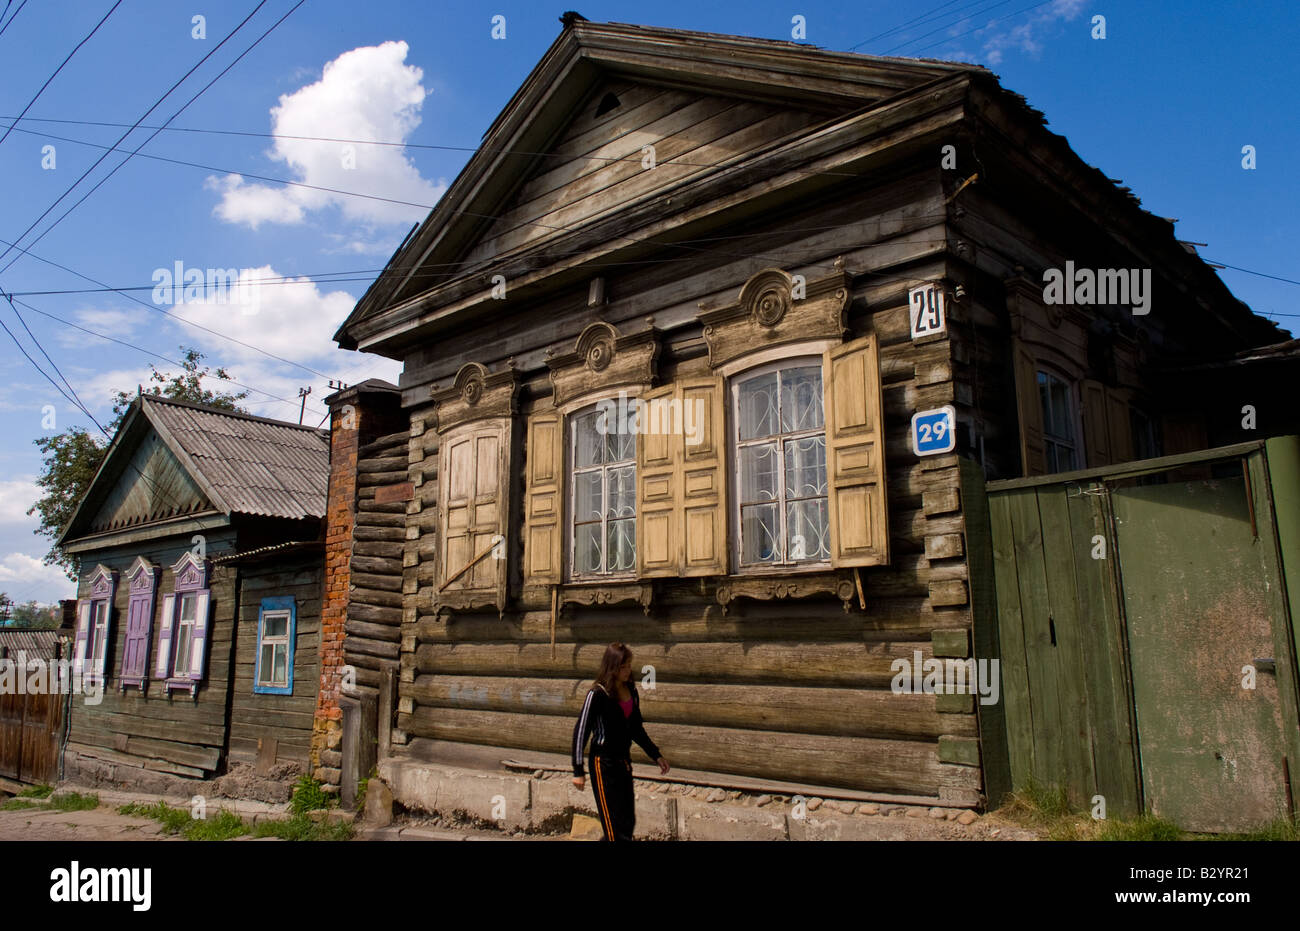 Beautiful Classic Houses Of Beautiful Old Wooden Houses With Shutters Irather Worn